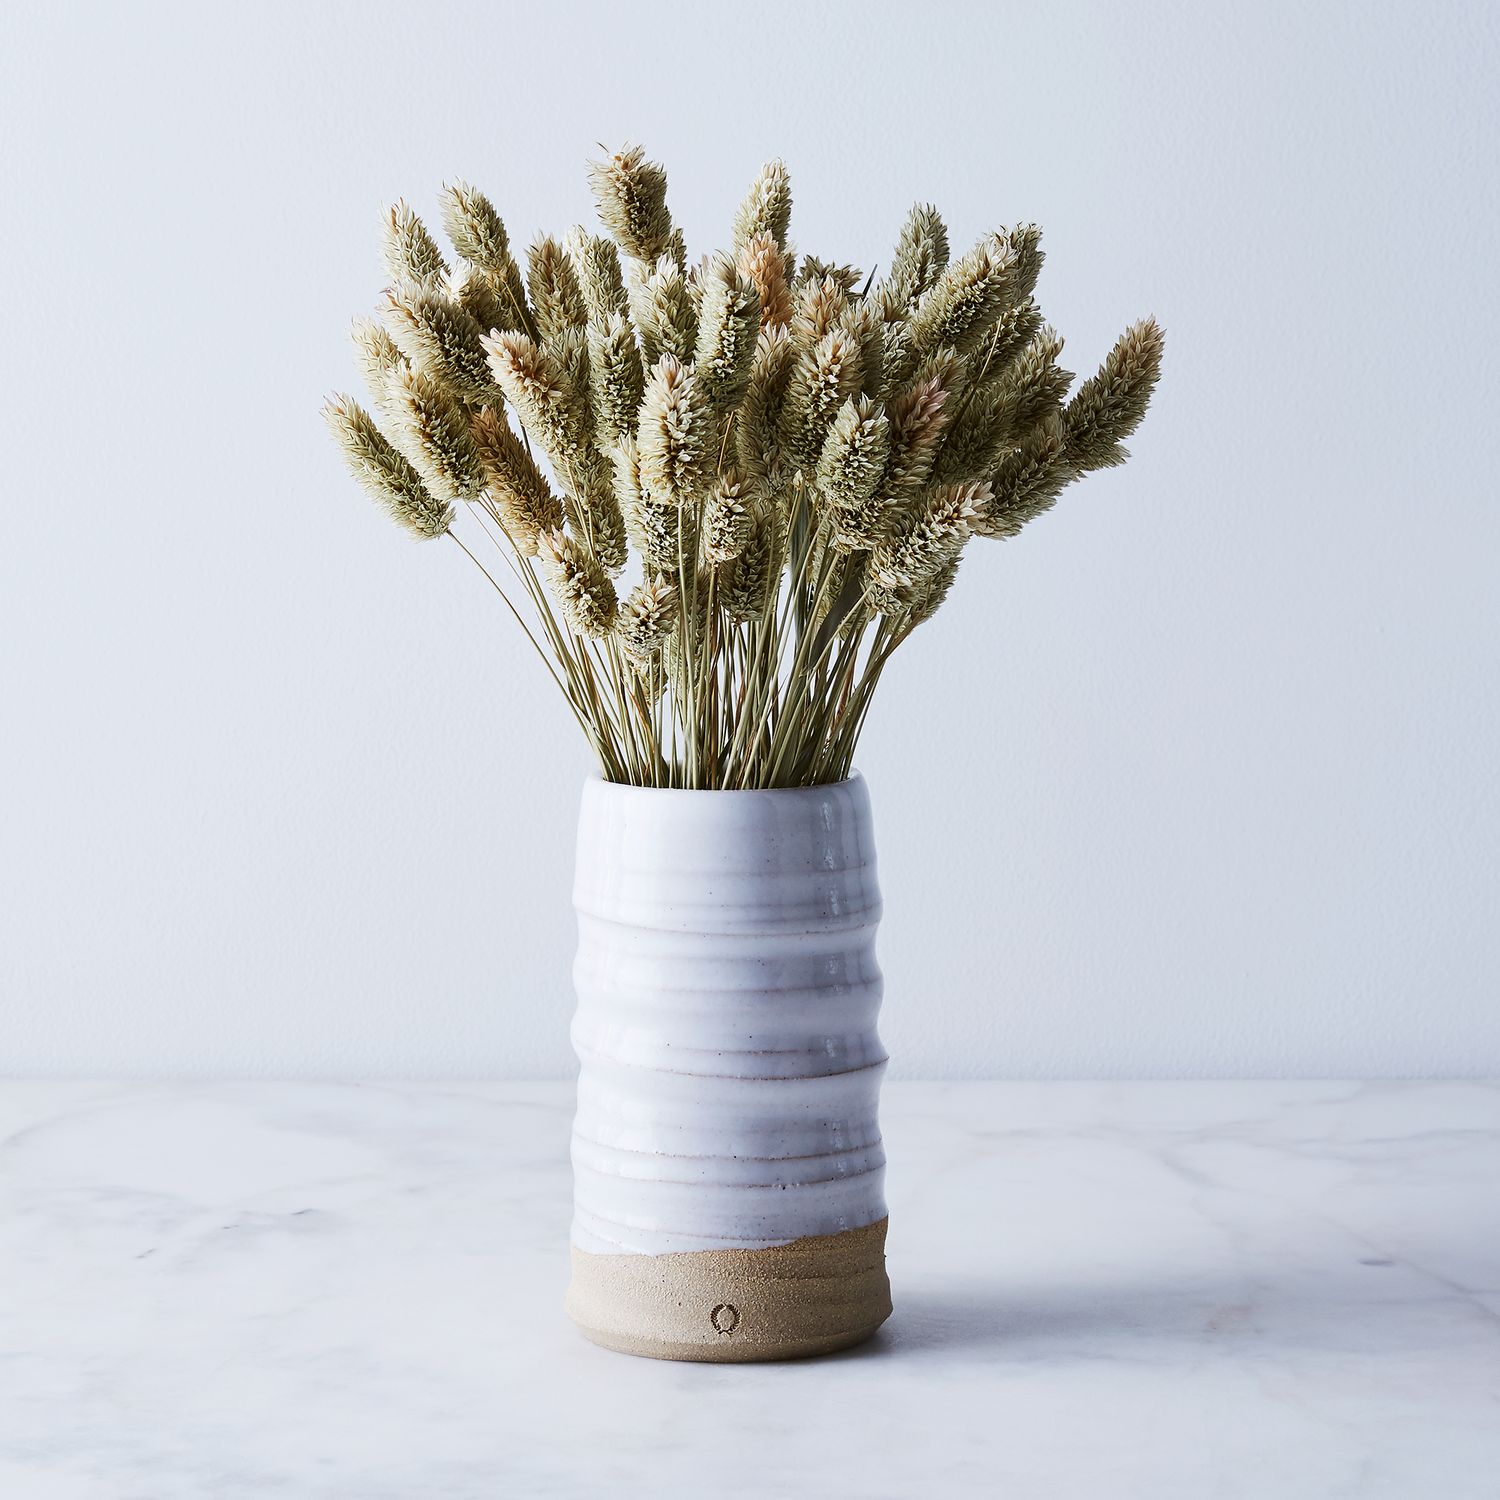 Handmade Ceramic Vase Amp Dried Floral Arrangement On Food52